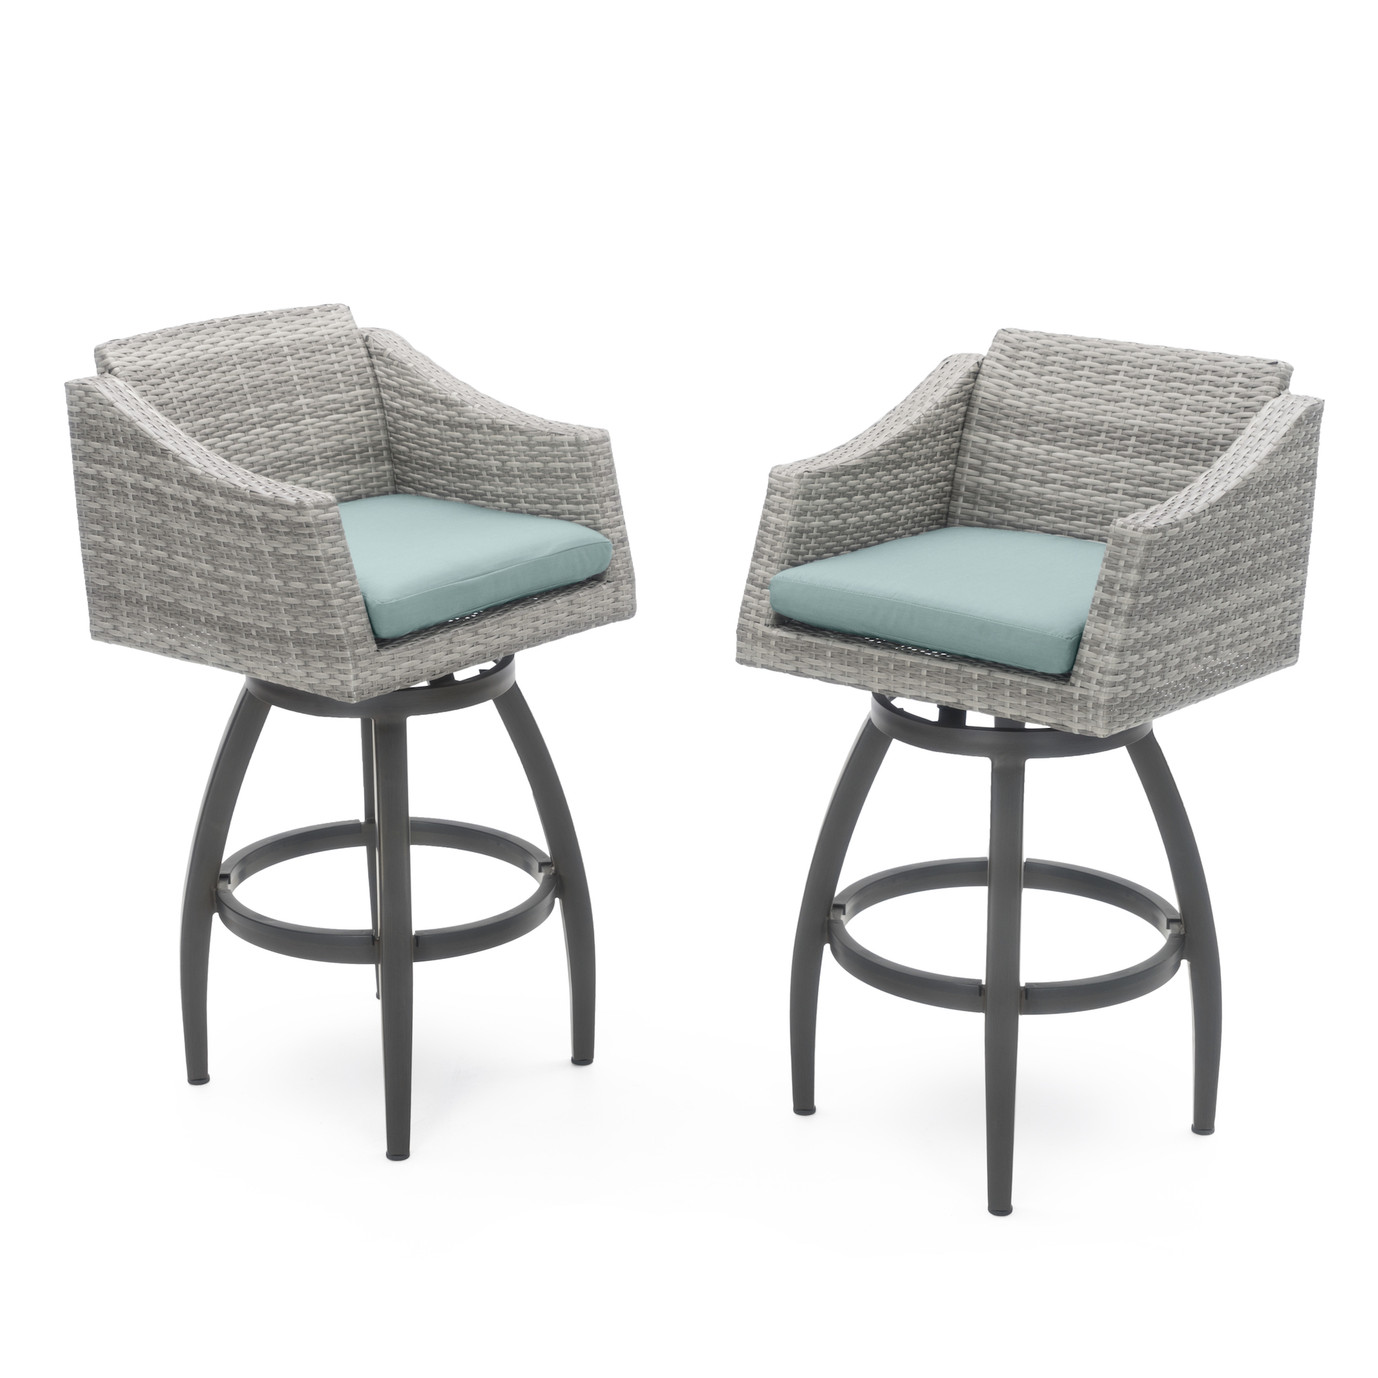 Cannes™ Swivel Barstool 2pk - Bliss Blue